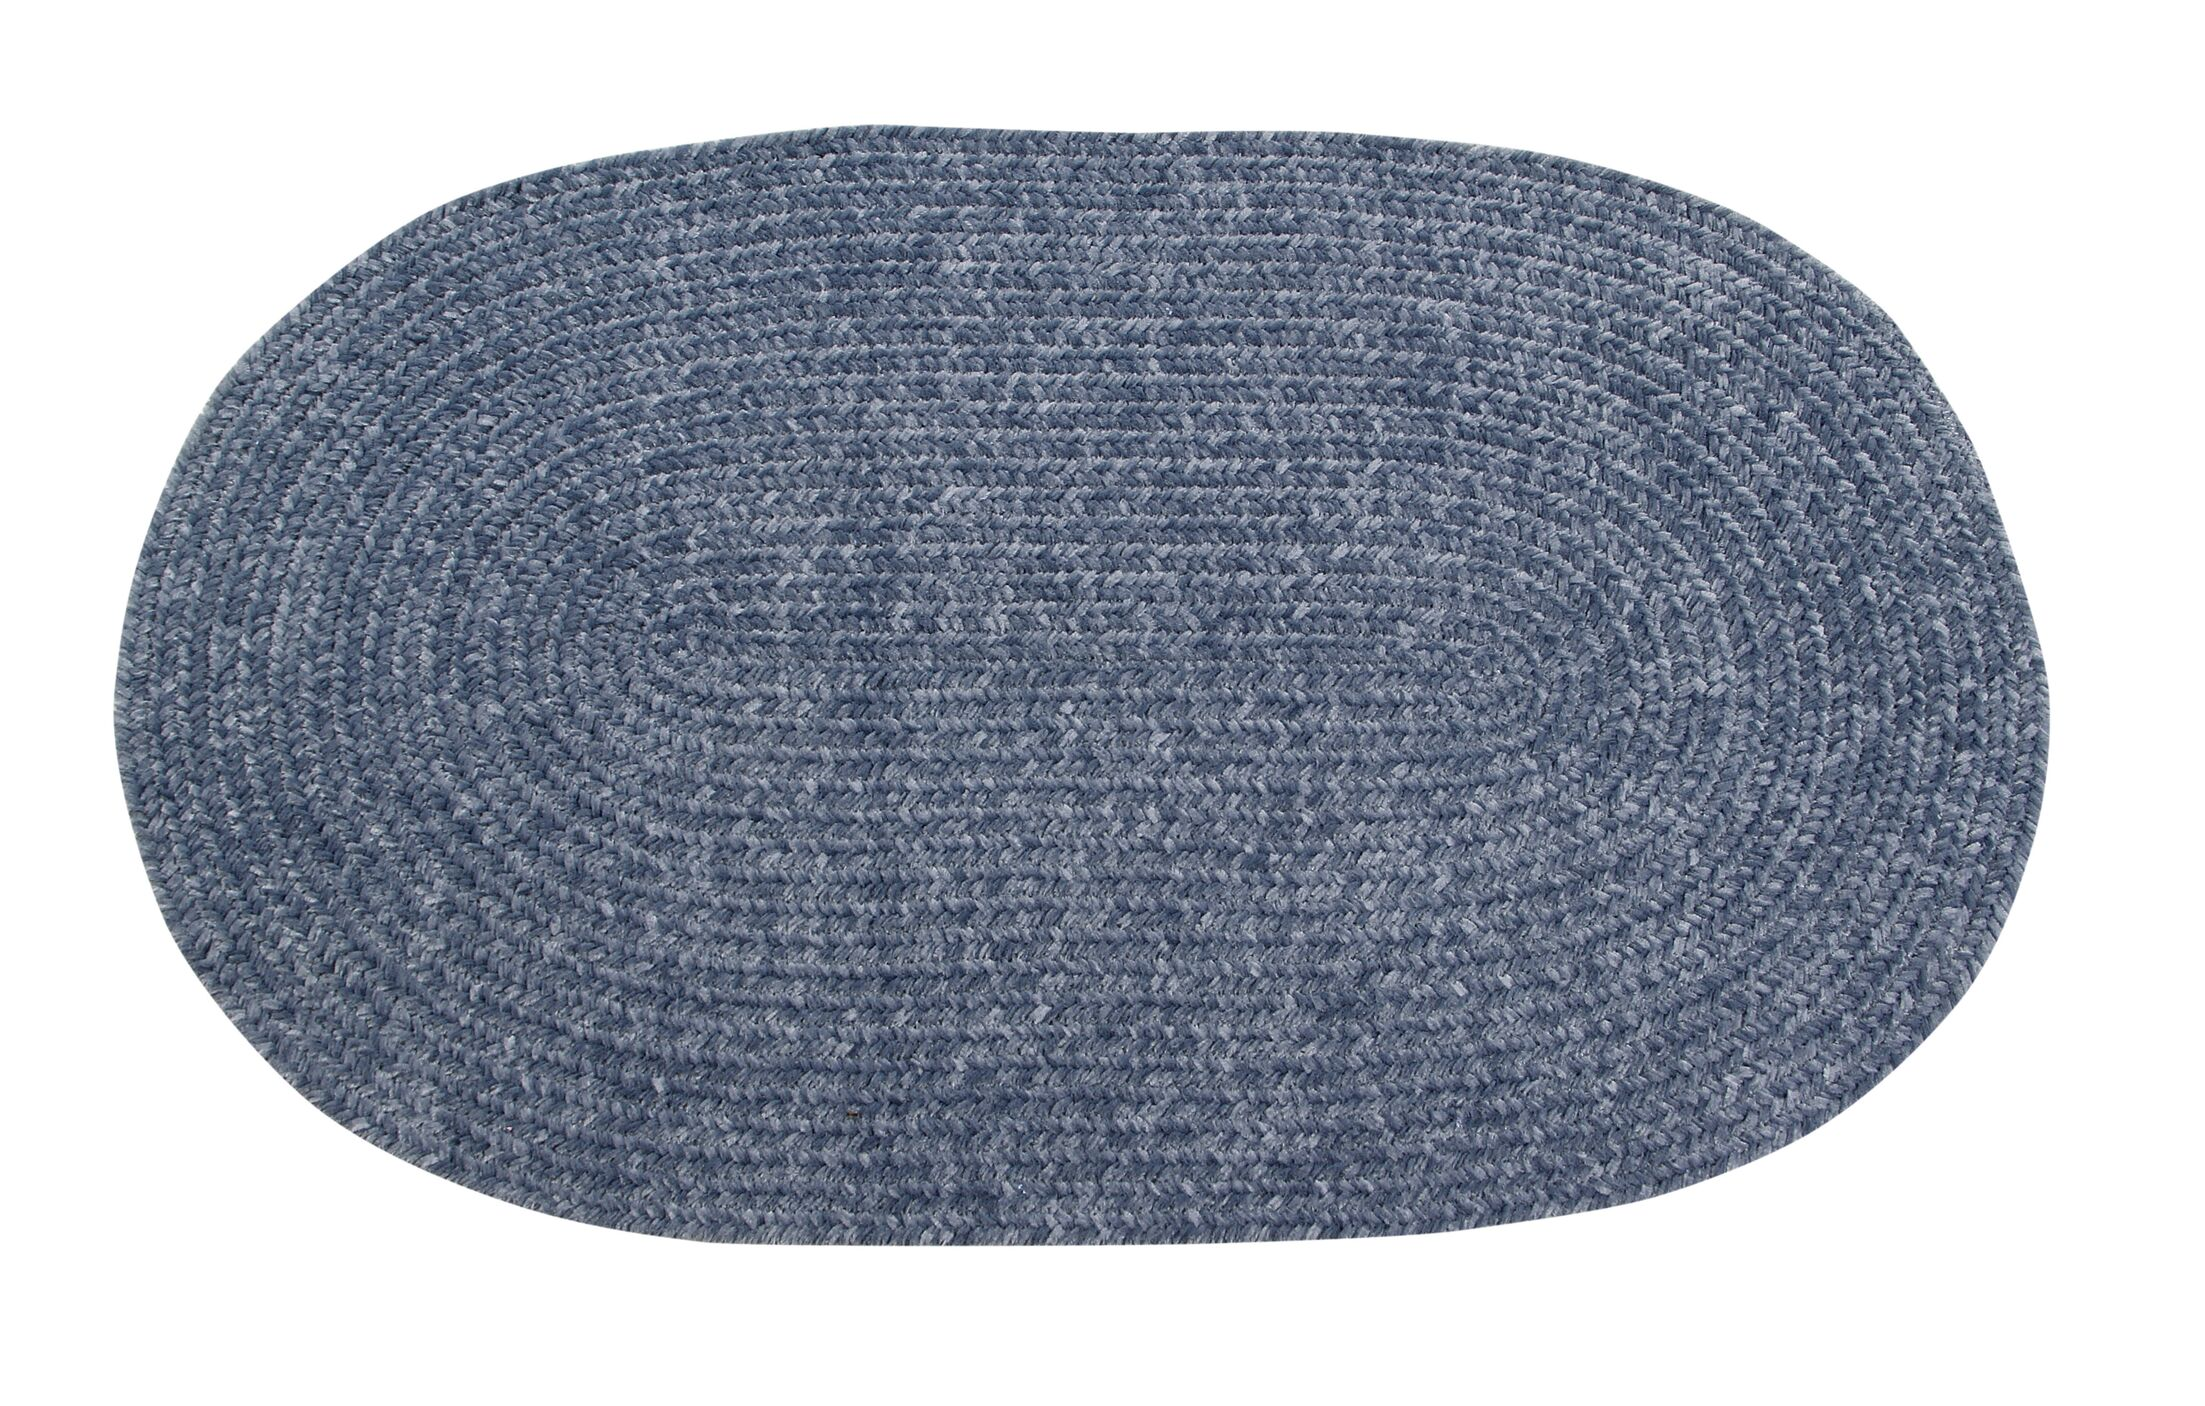 Keaton Chenille Reversible Braided Gray Area Rug Rug Size: Oval 8' x 10'